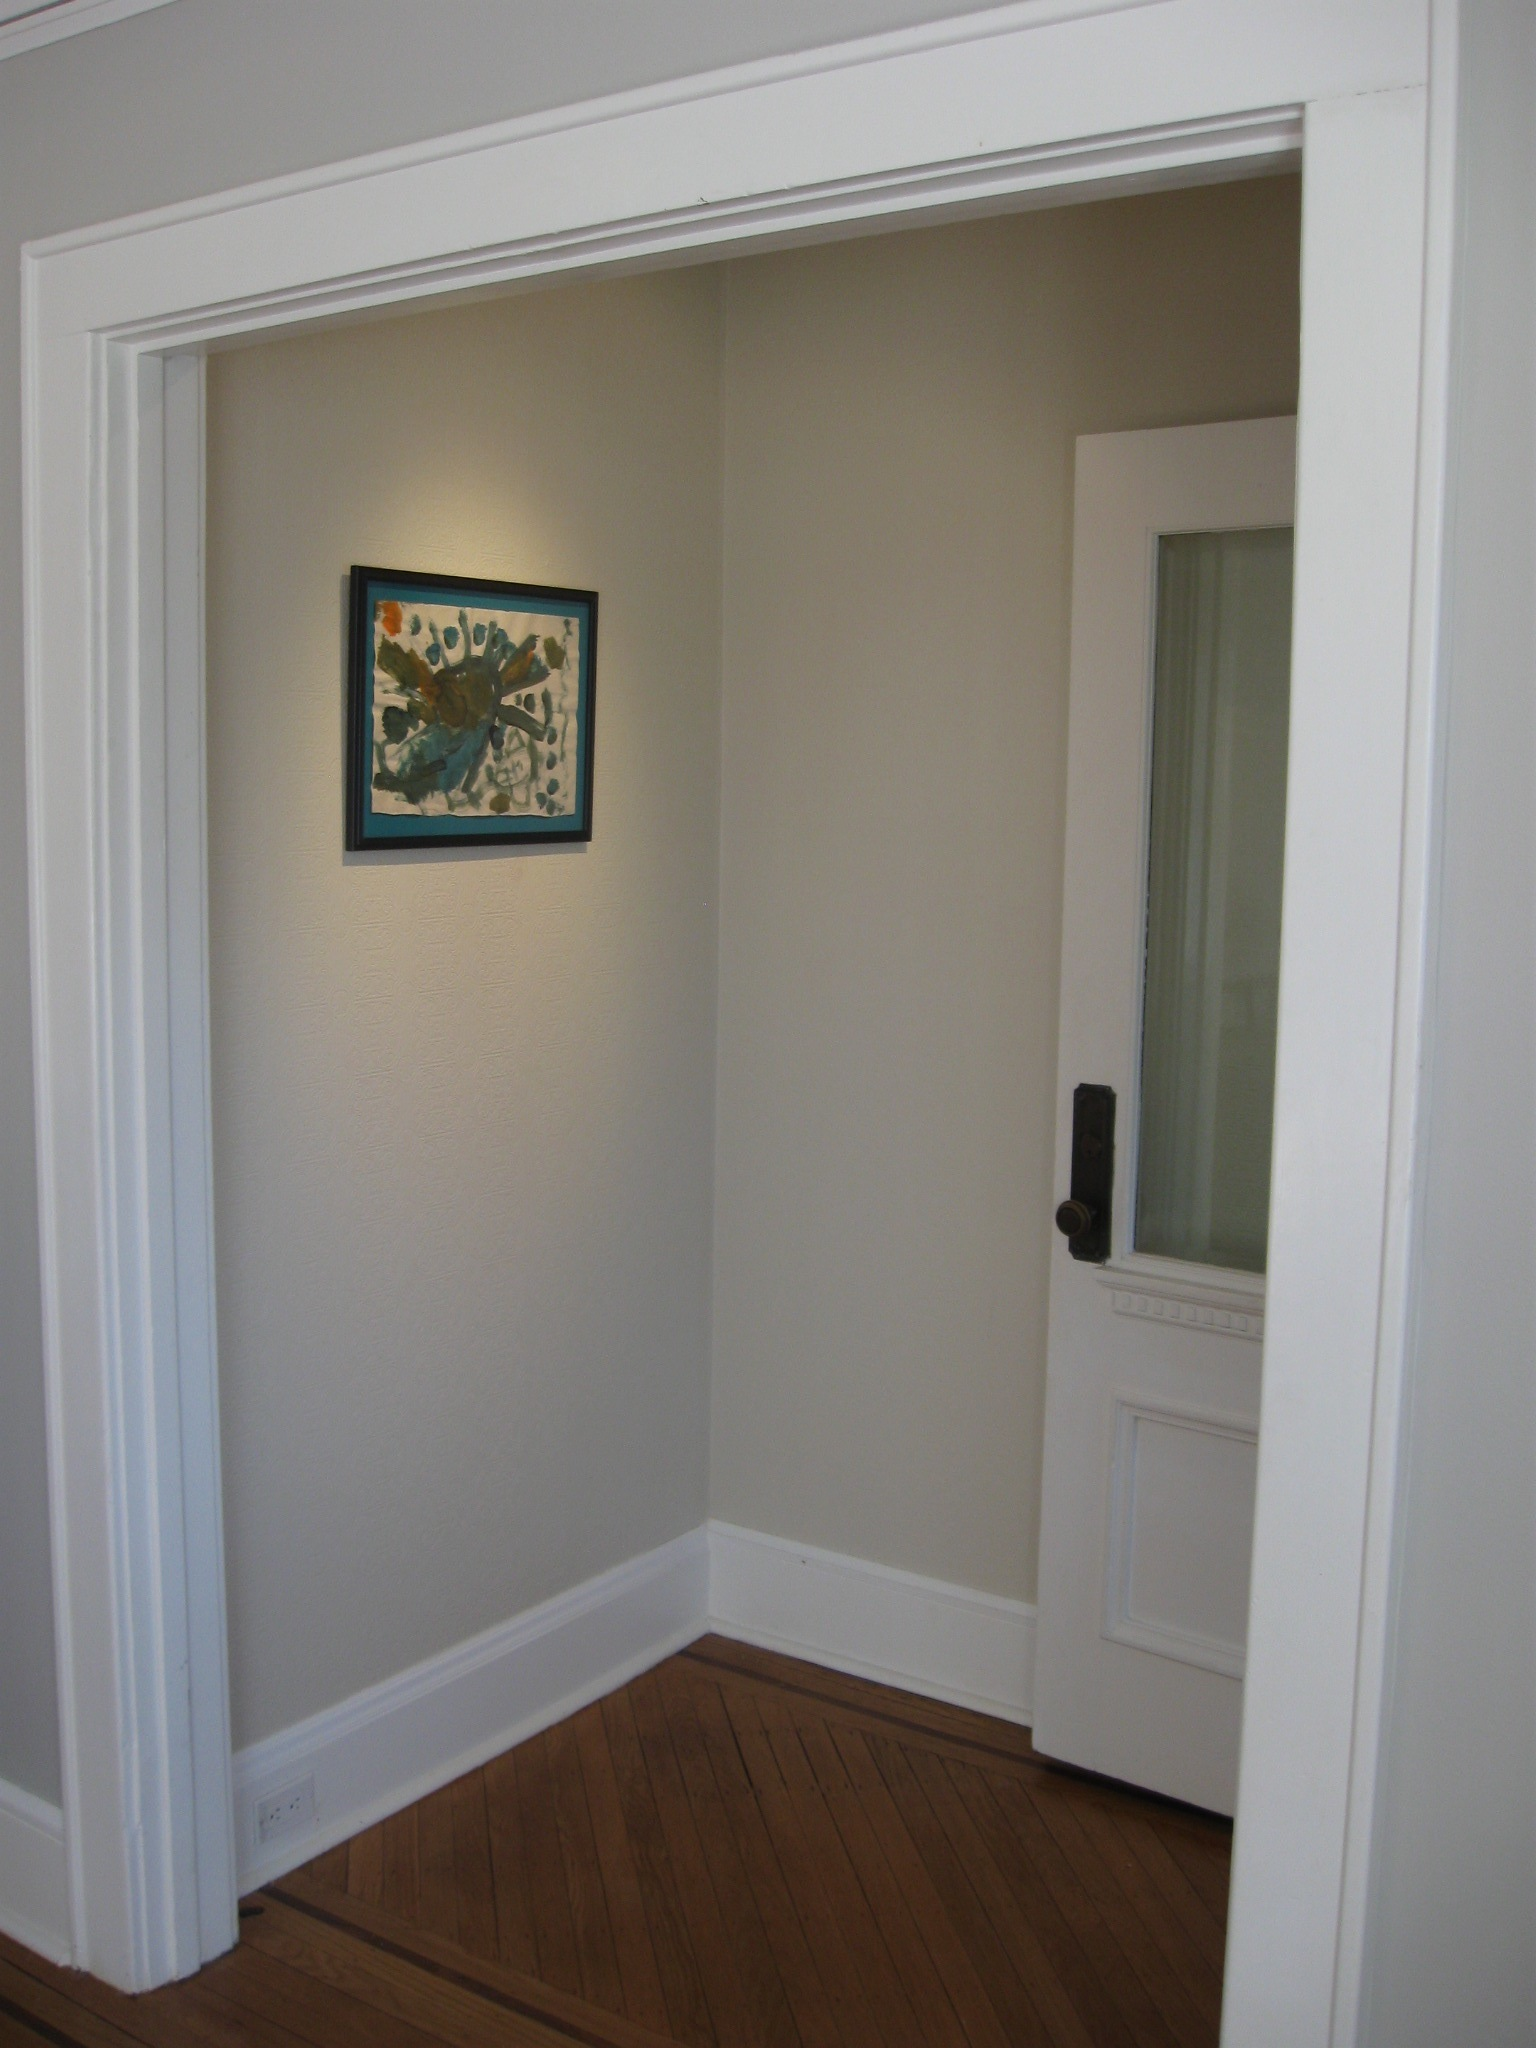 No one puts an entryway in a corner!